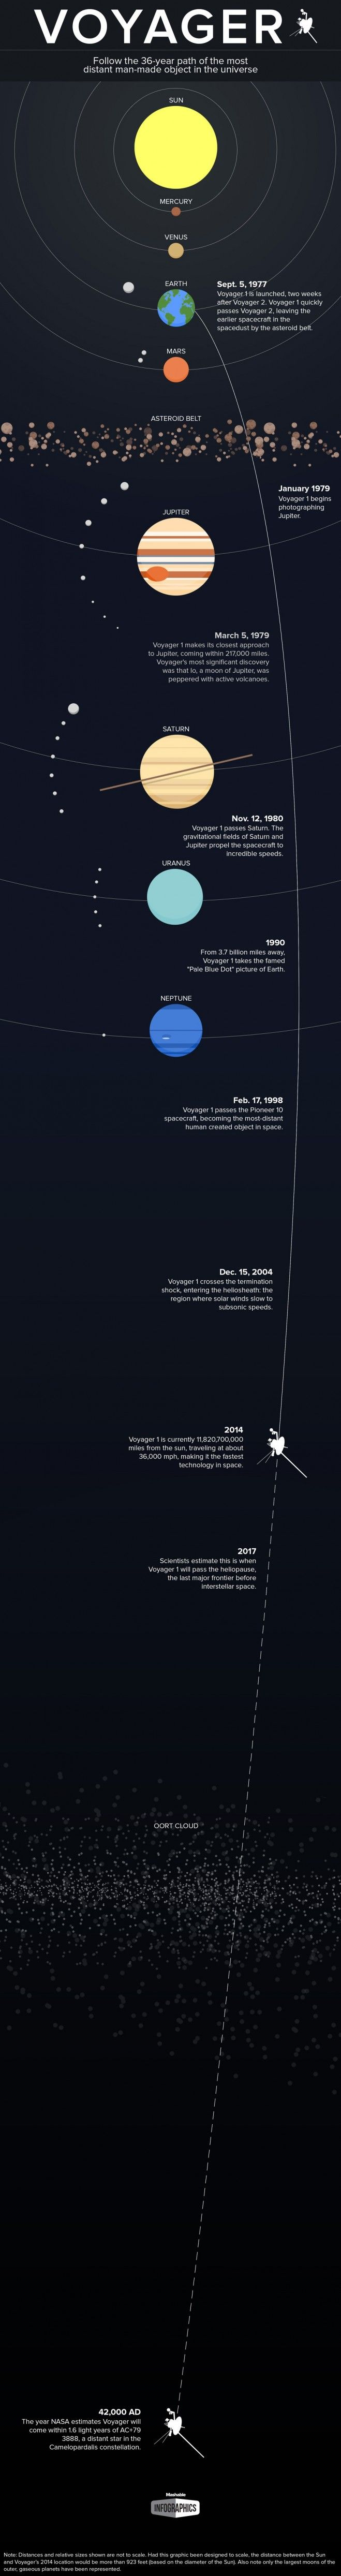 a lovely infographic tracking voyager 1s journey into space now hurtling past neptune and